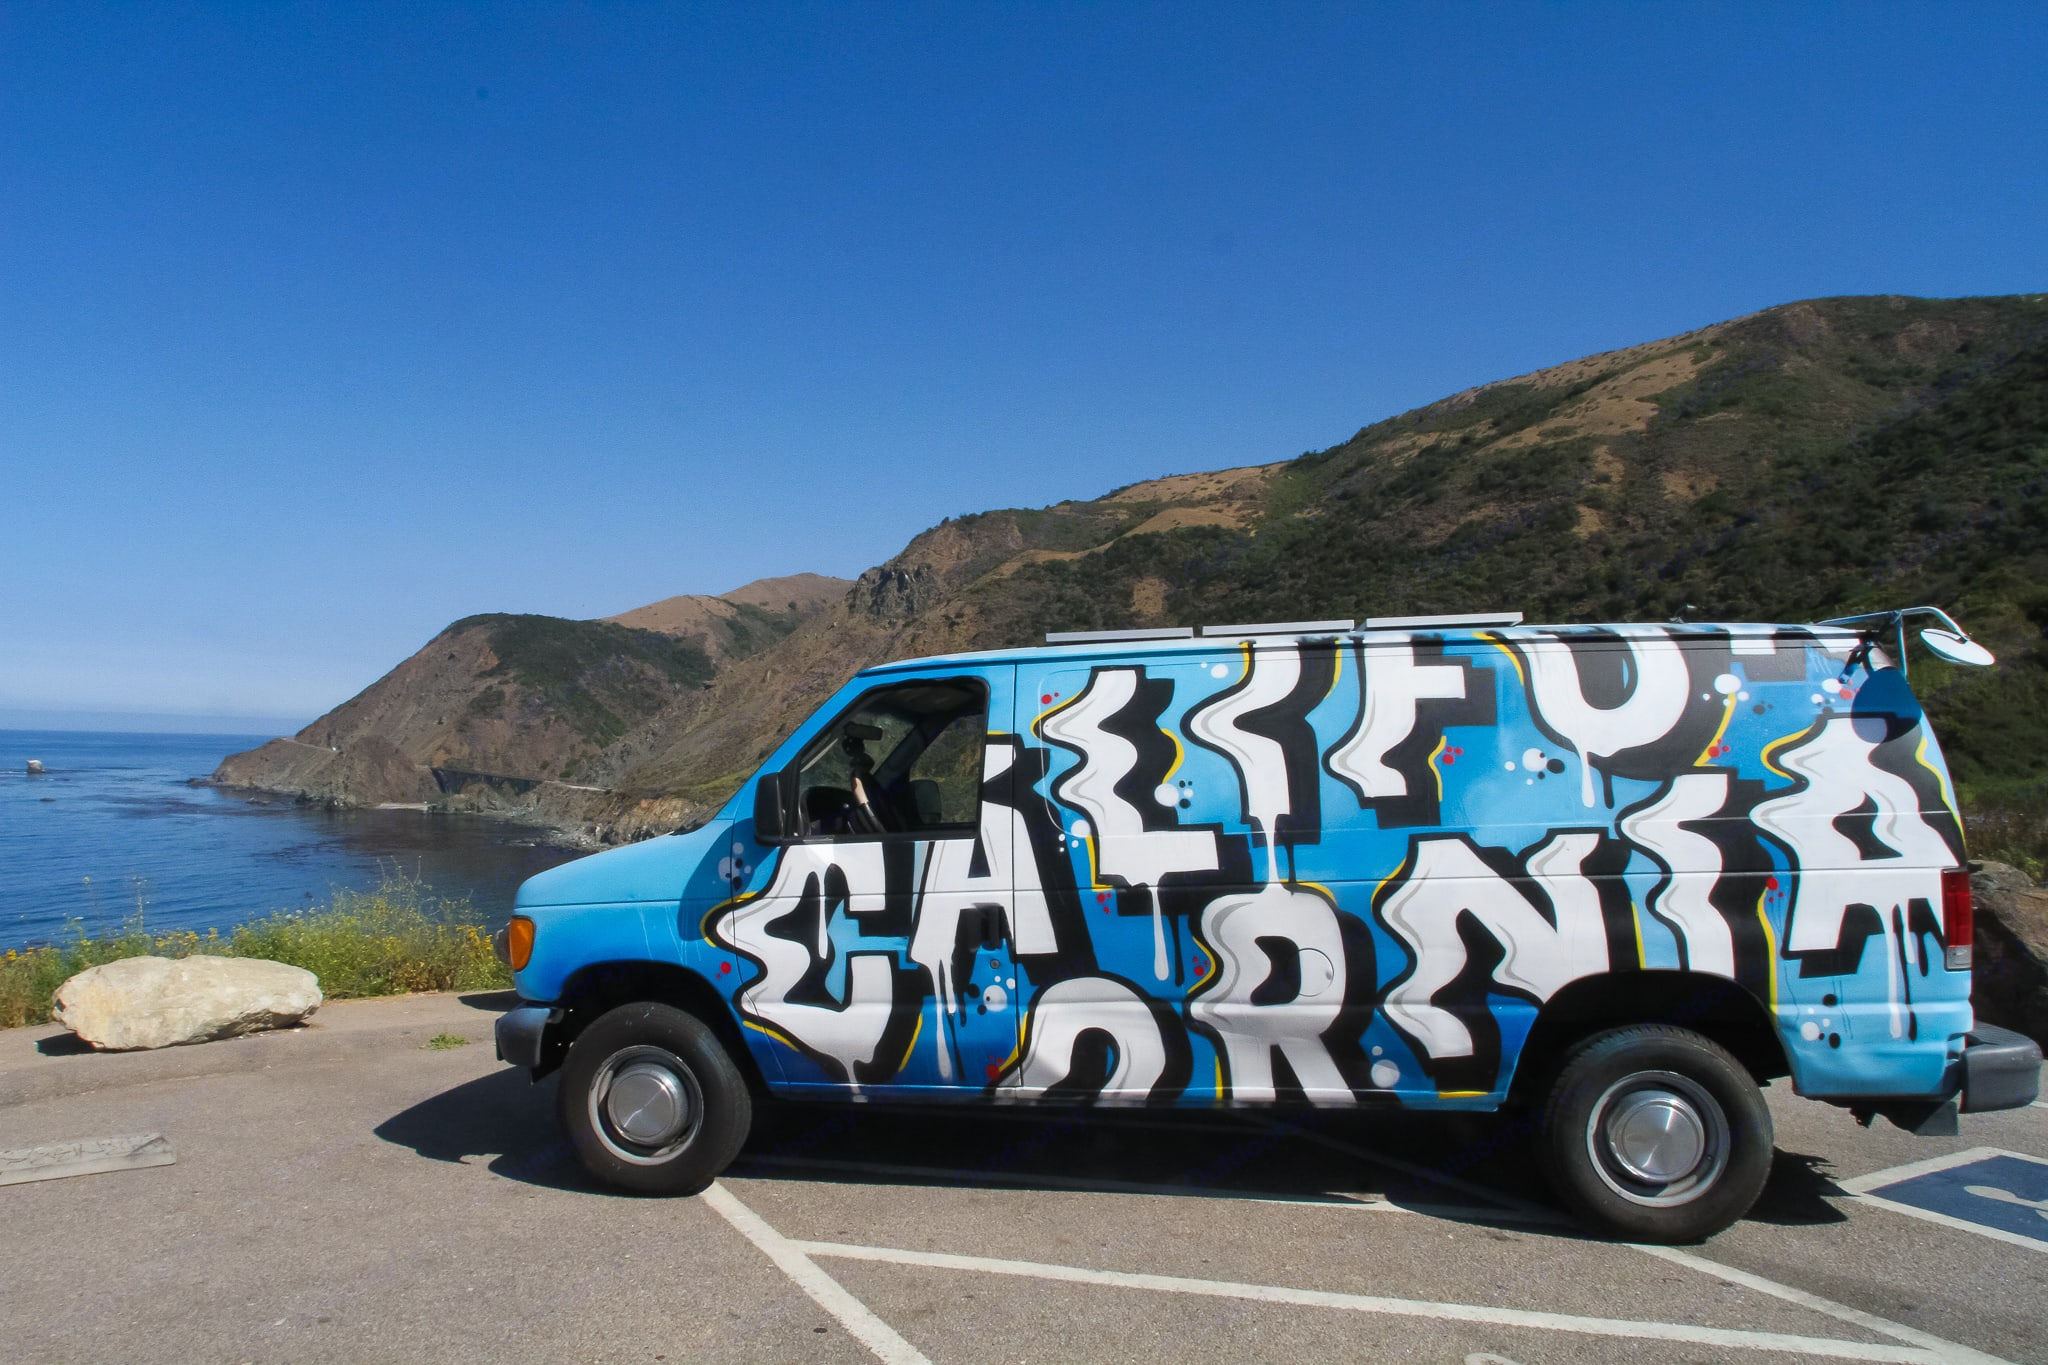 The other Iconic side of Jonequa (at Big Sur). Ford Econoline 2005